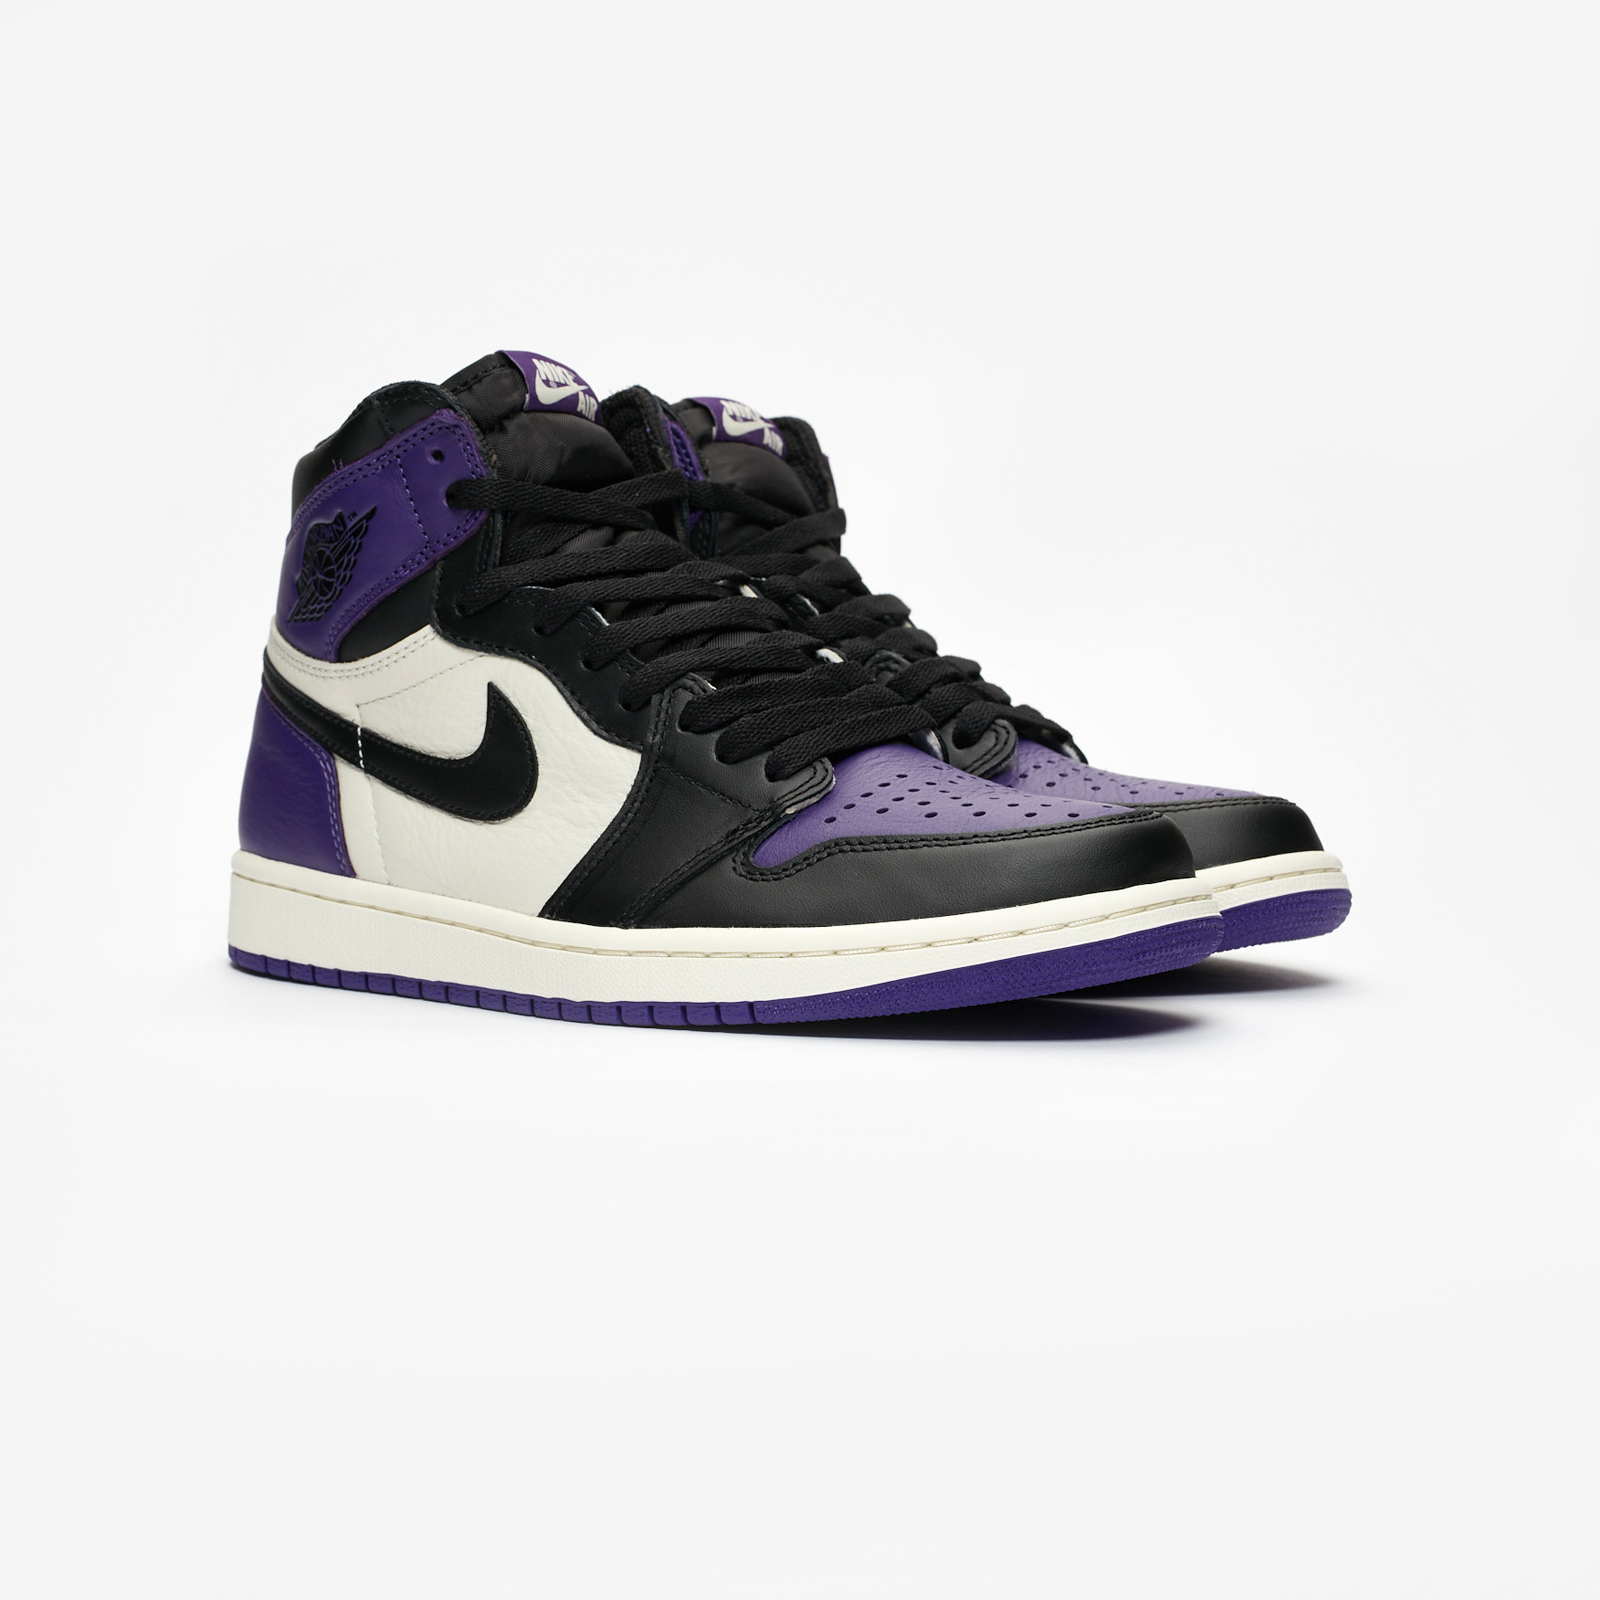 24466b3e11a Jordan Brand Air Jordan 1 Retro High OG - 555088-501 ...